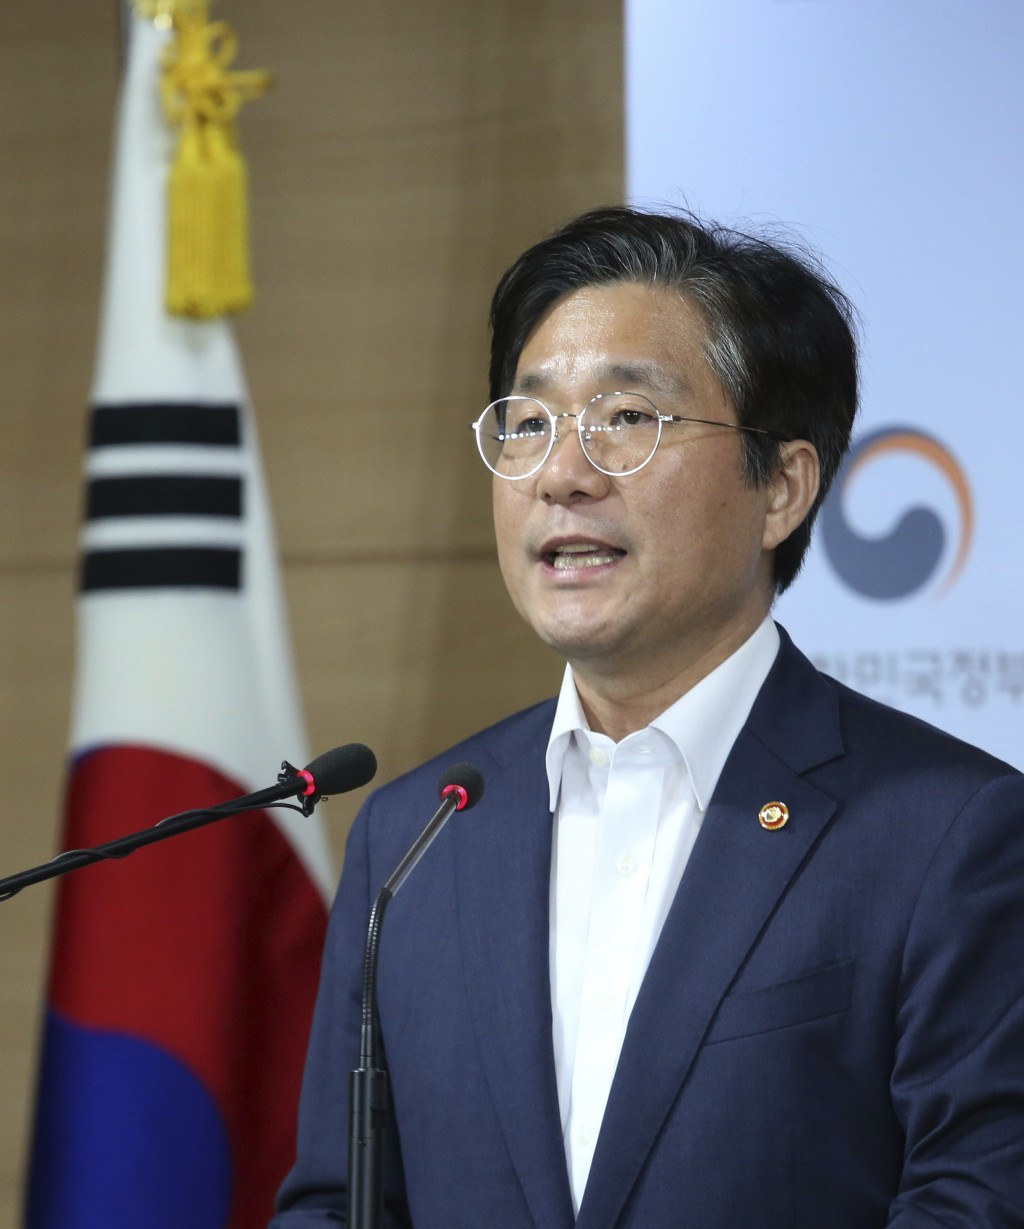 Sung Yun-mo, South Korea's Minister of Trade, Industry and Energy, speaks during a press conference at the government complex in Seoul, South Korea, T